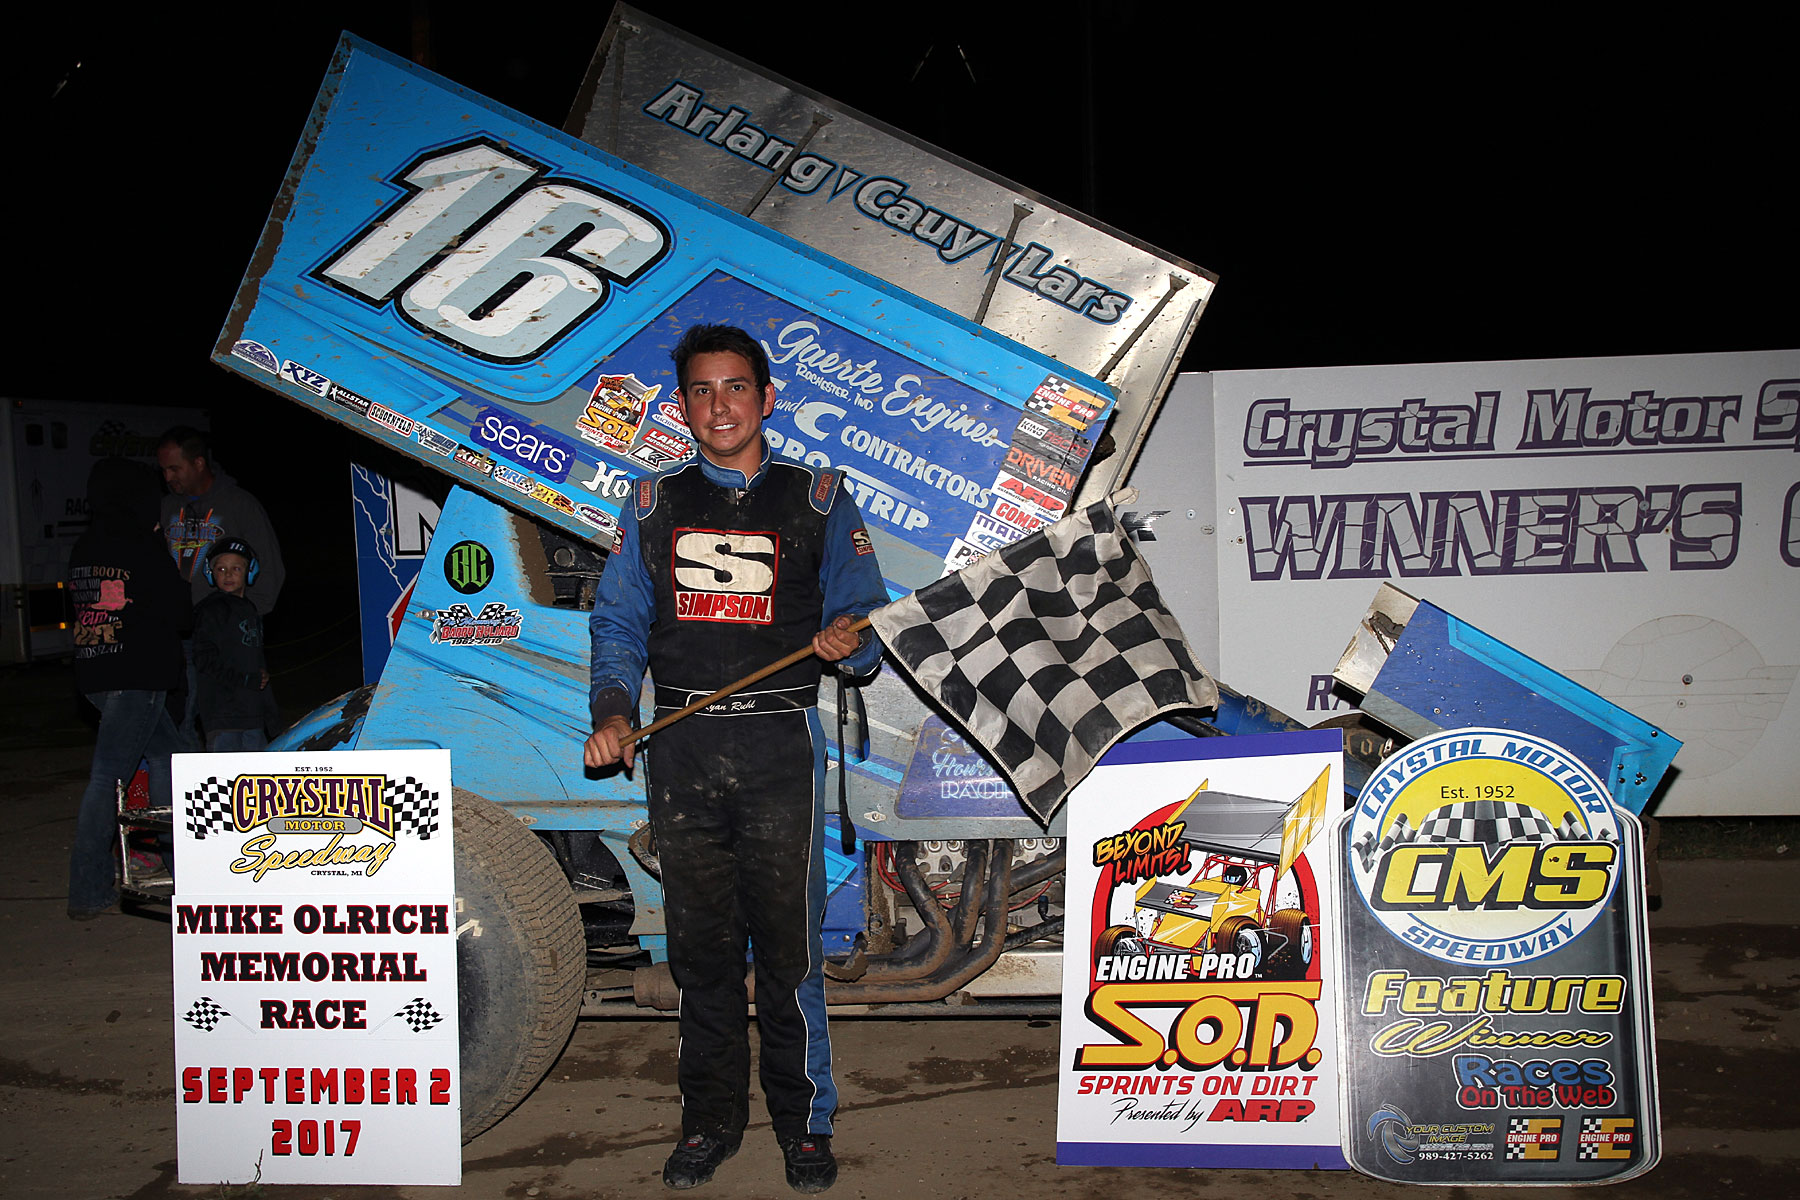 Ryan Ruhl takes his 3rd SOD Mike Olrich Memorial win at Crystal Motor Speedway